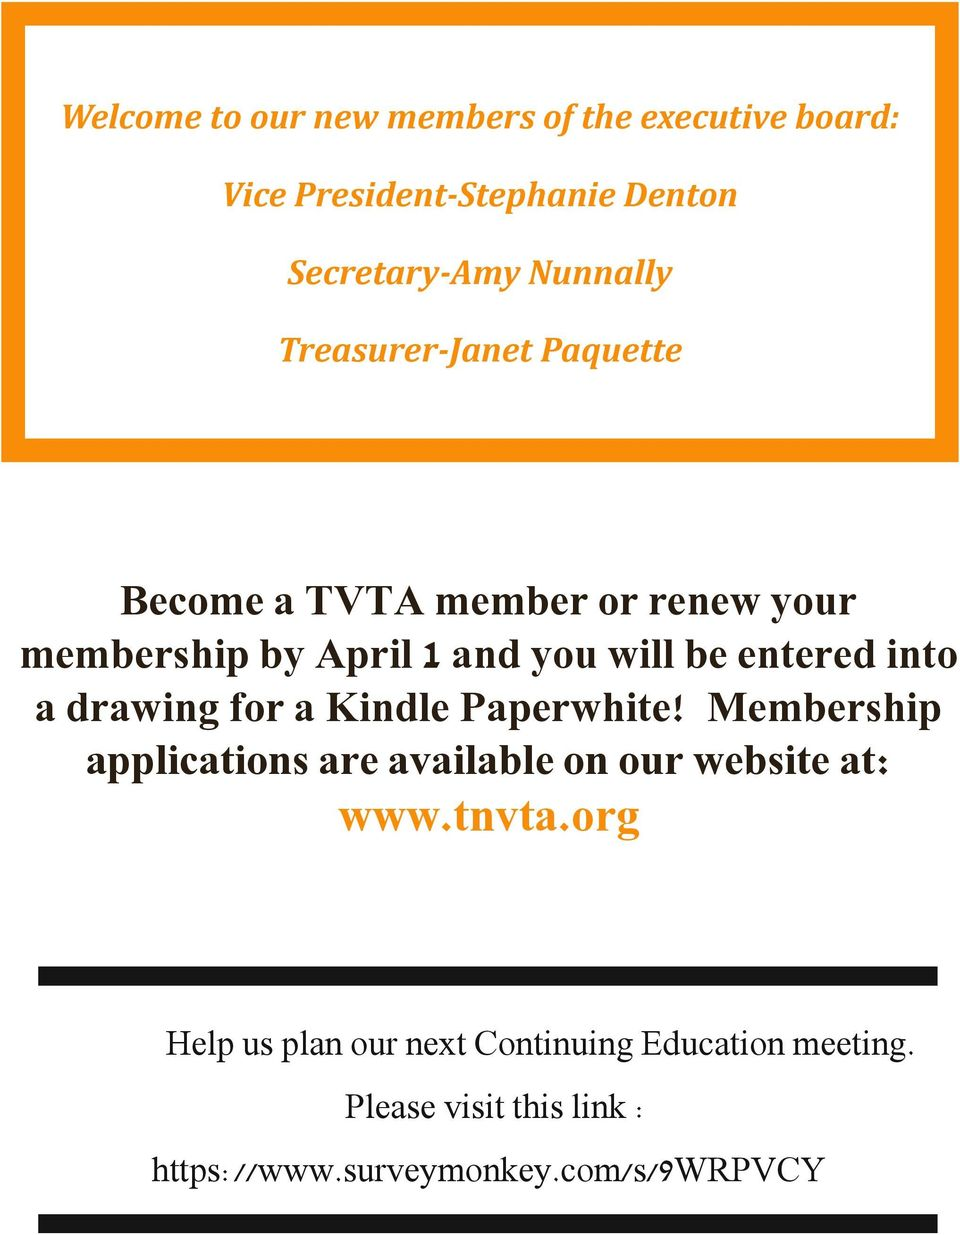 into a drawing for a Kindle Paperwhite! Membership applications are available on our website at: www.tnvta.